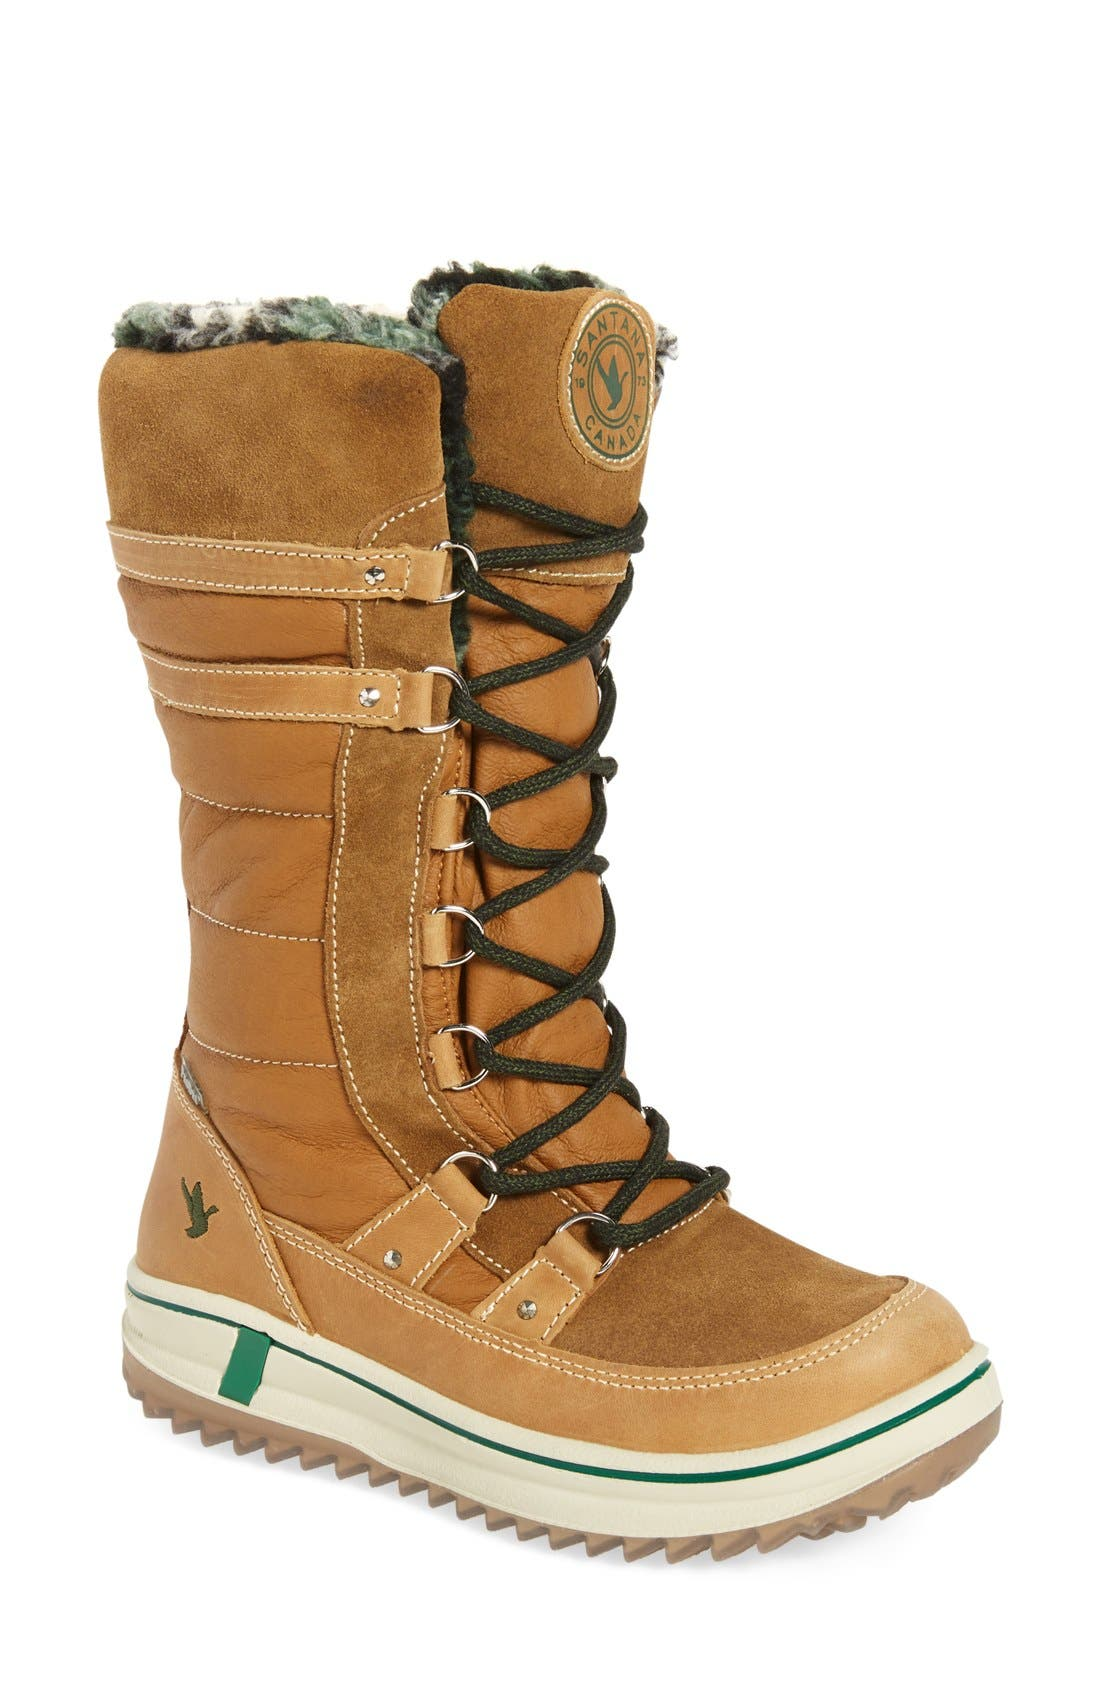 SANTANA CANADA 'Phoenix' Waterproof Boot